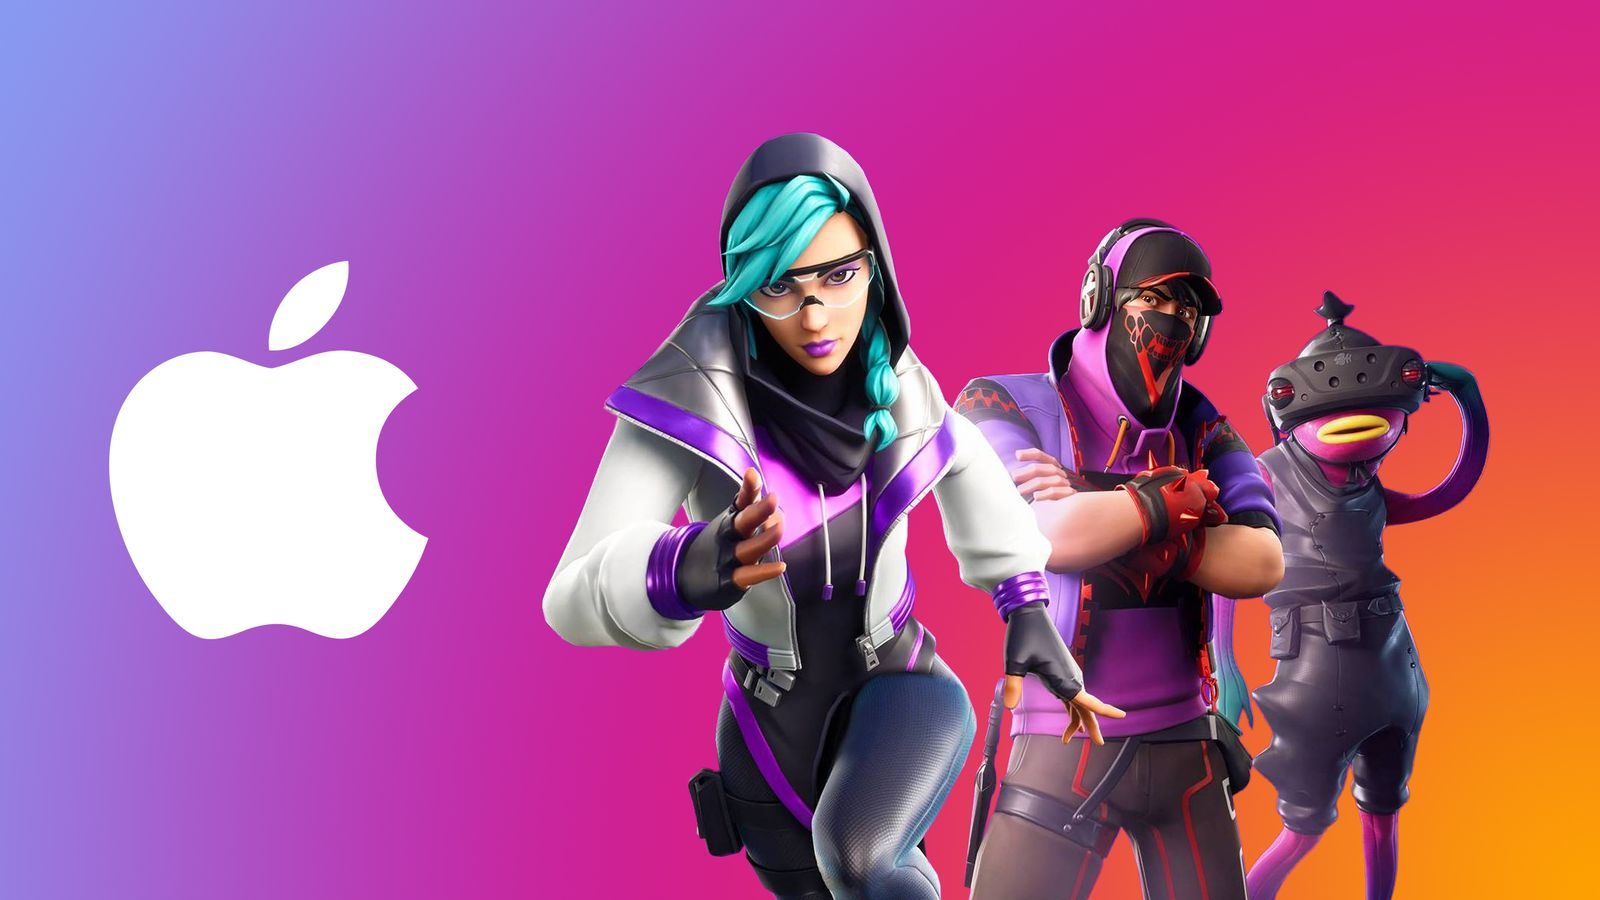 Weekly Highlights # 58: Epic Games App Store Deletion and Neuralink Presentation